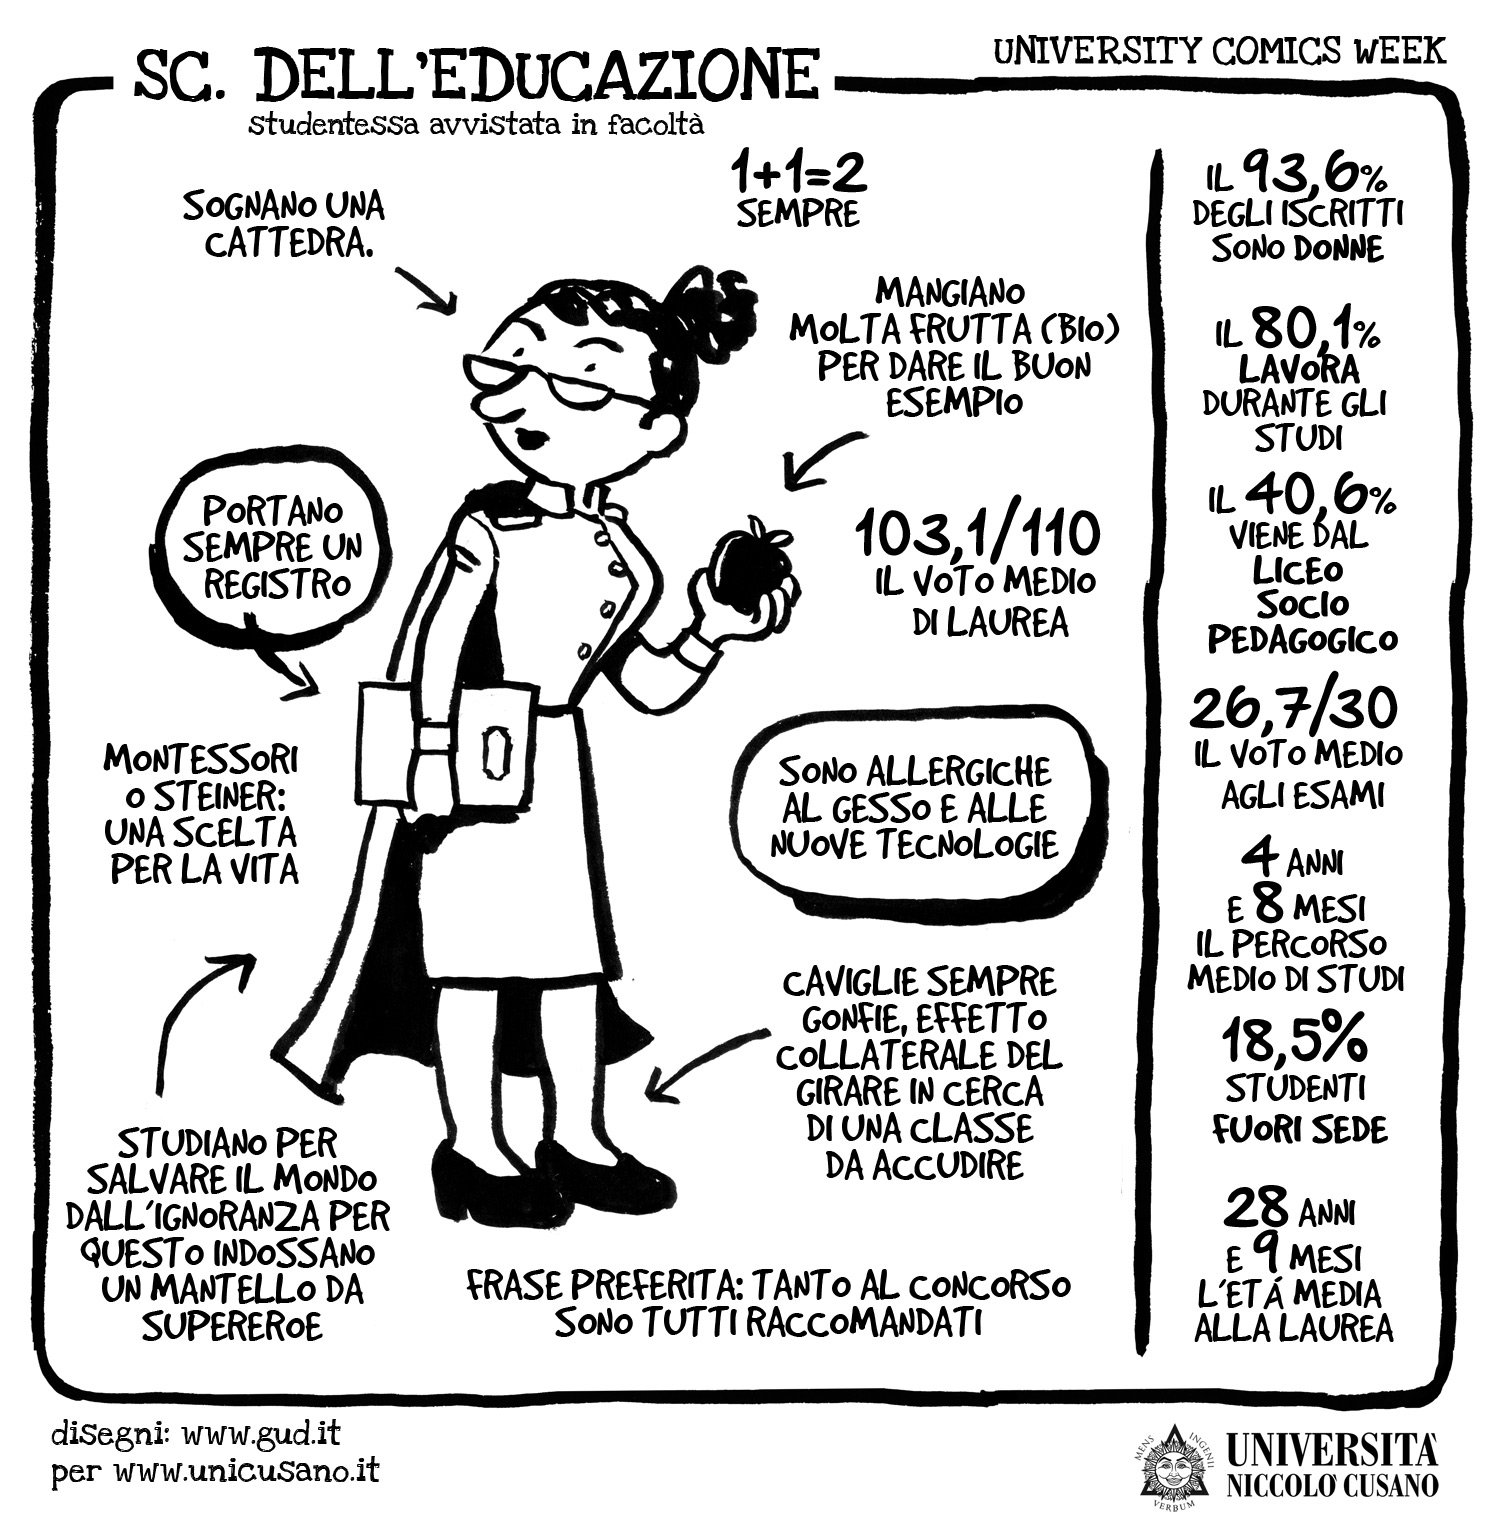 University Comics Week: Scienze educazione